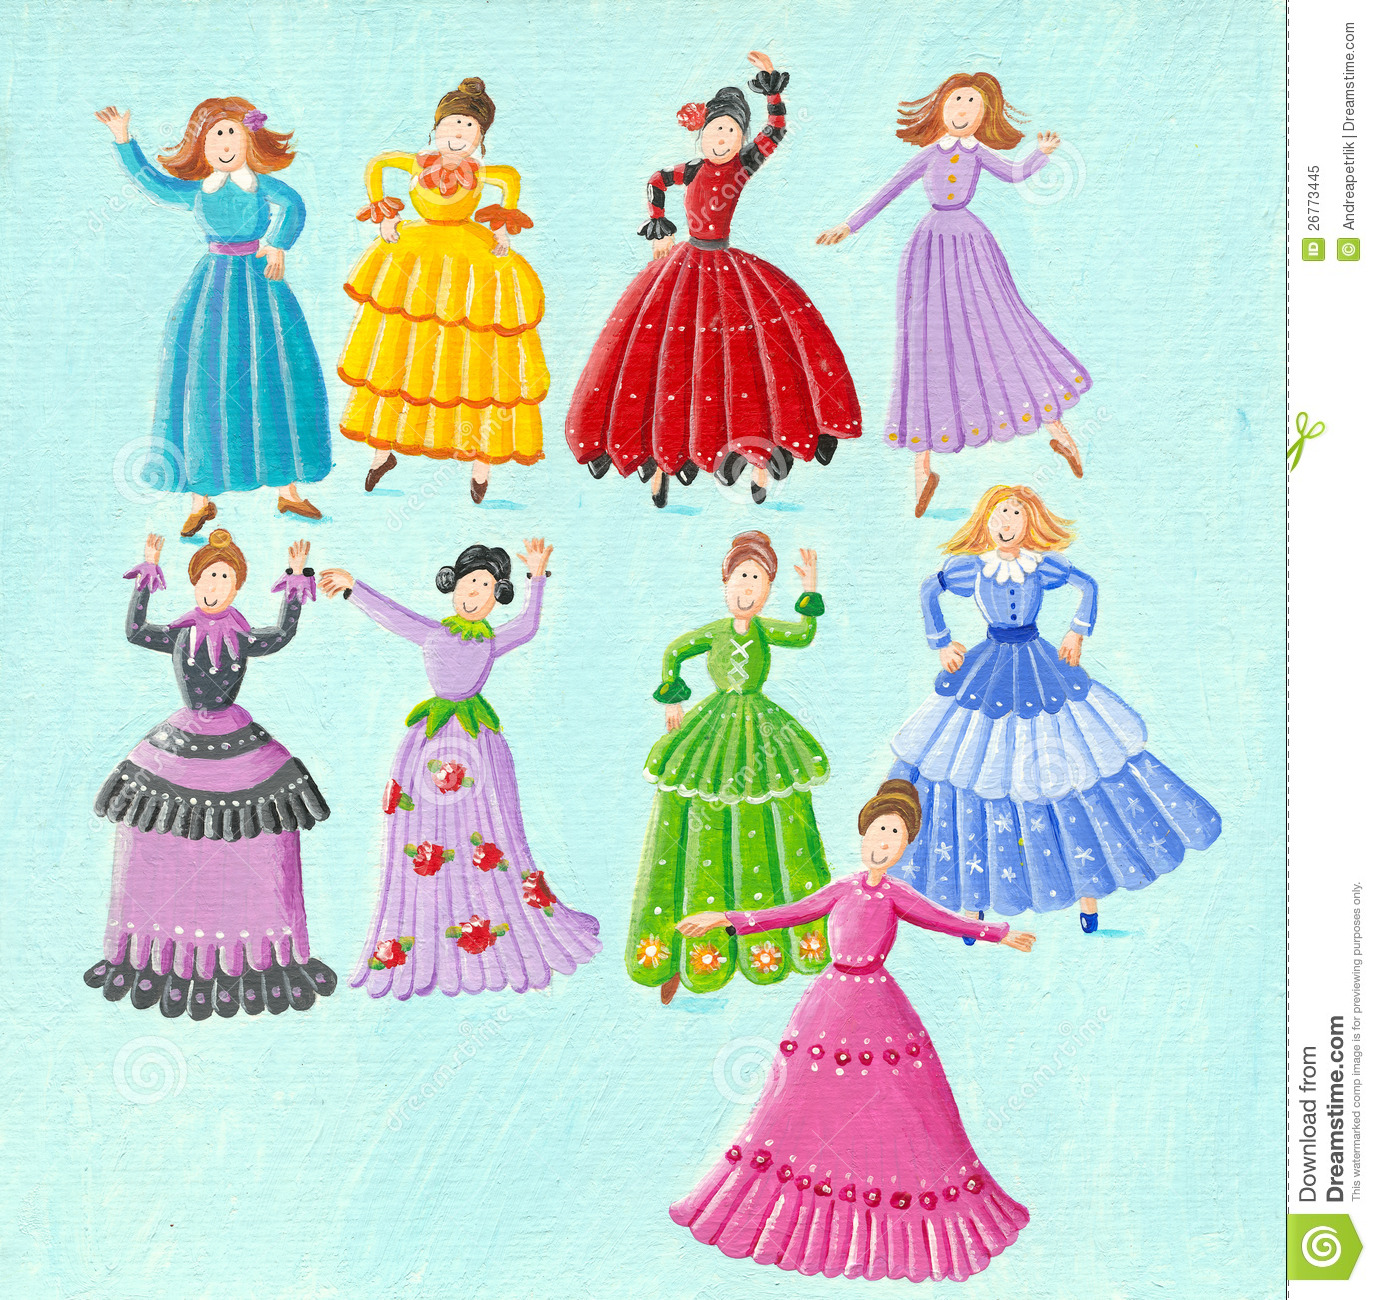 Nine ladies dancing stock illustration. Illustration of performing ...